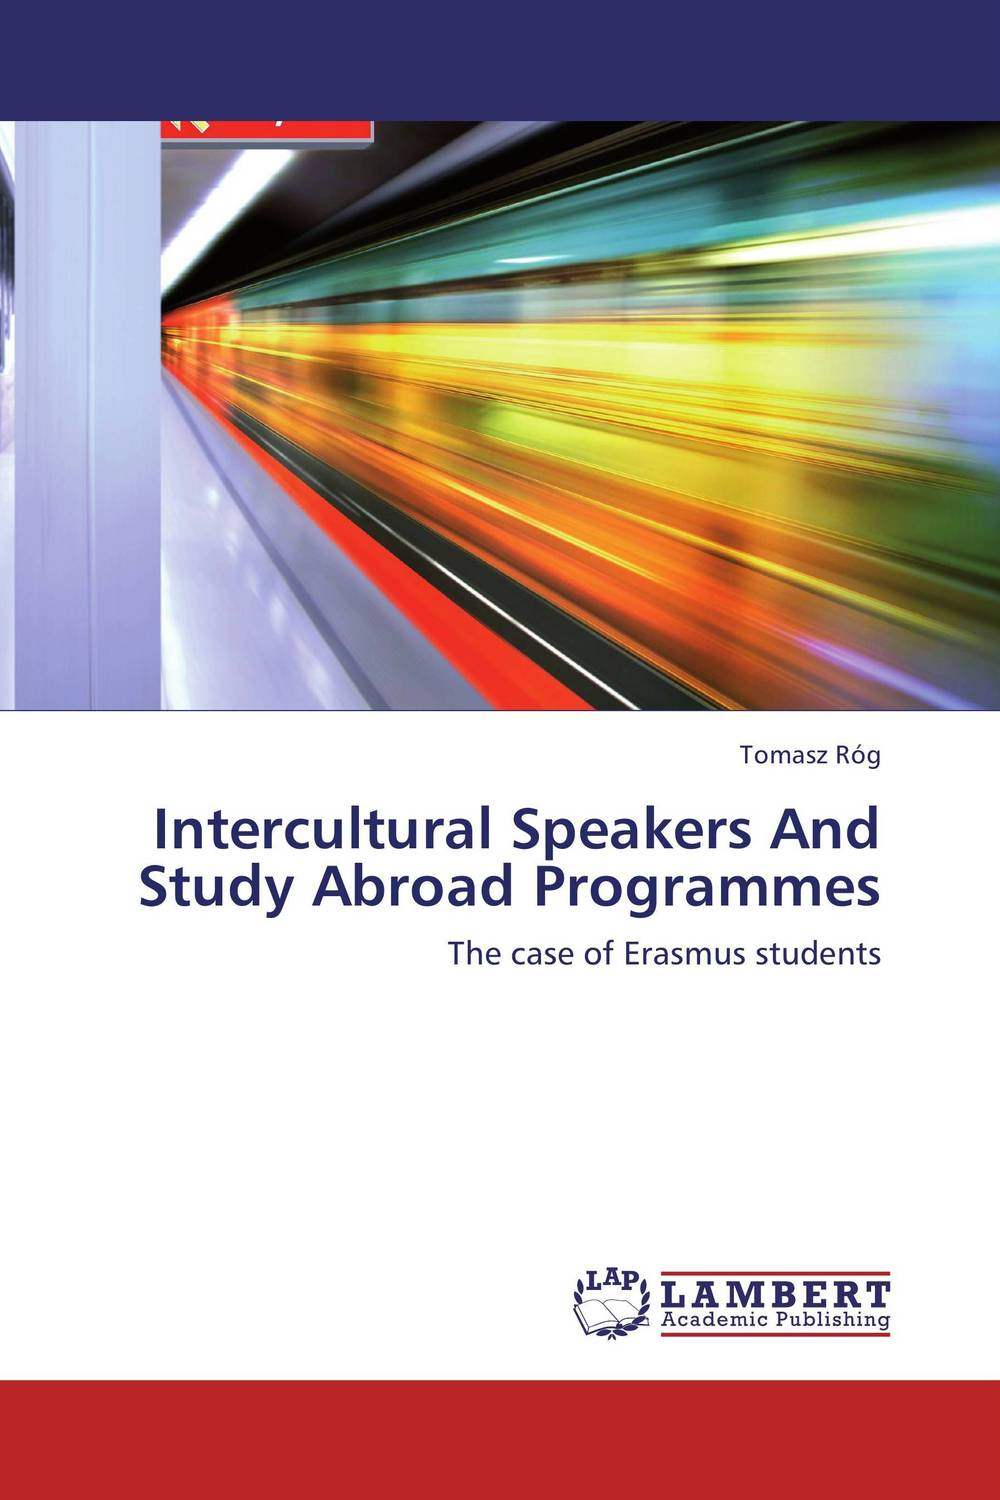 Intercultural Speakers And Study Abroad Programmes developing the communicative competence of second language speakers